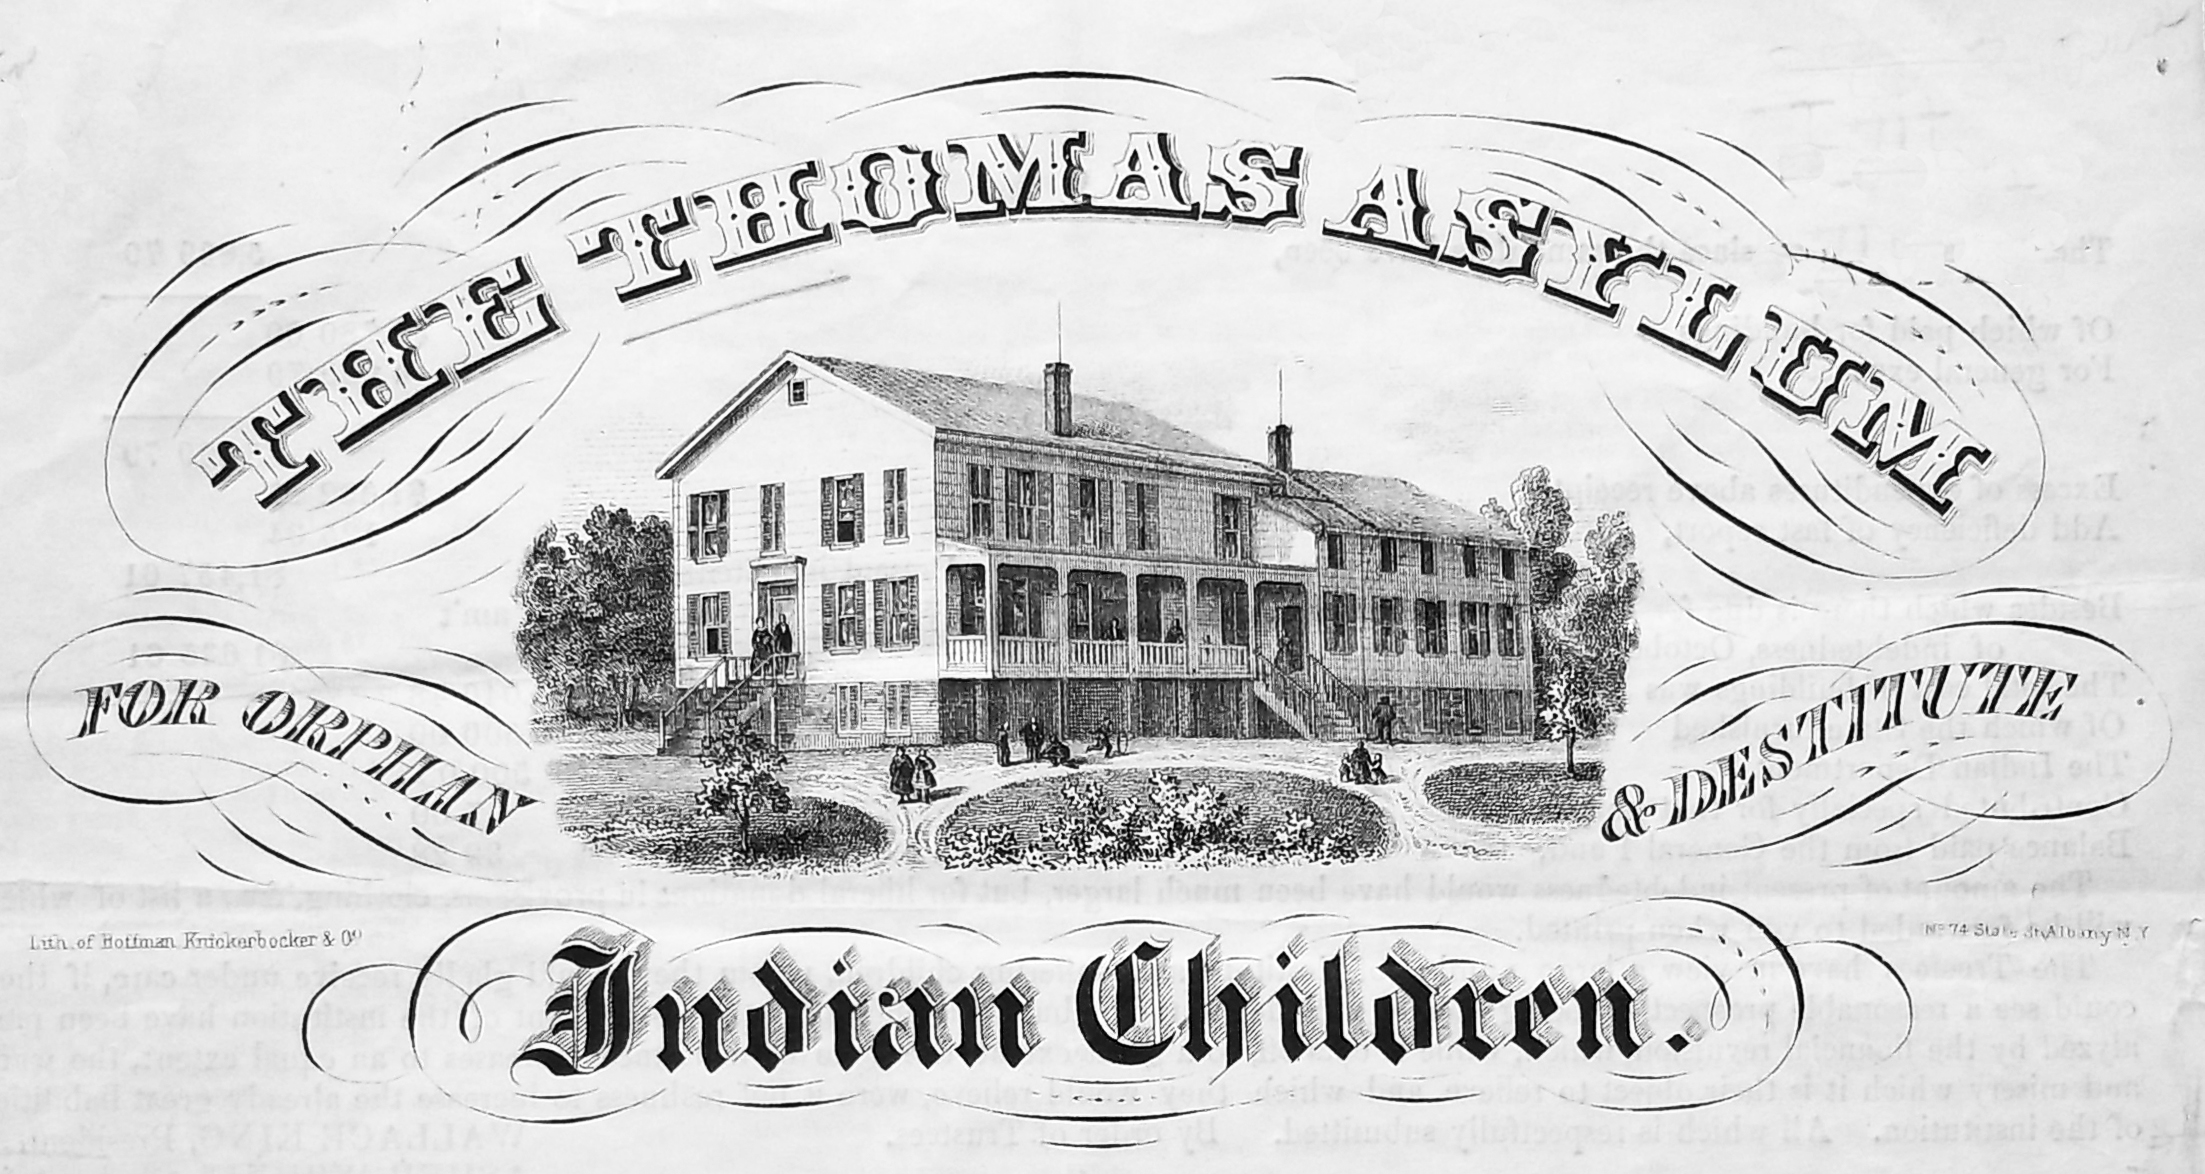 Thomas Indian School